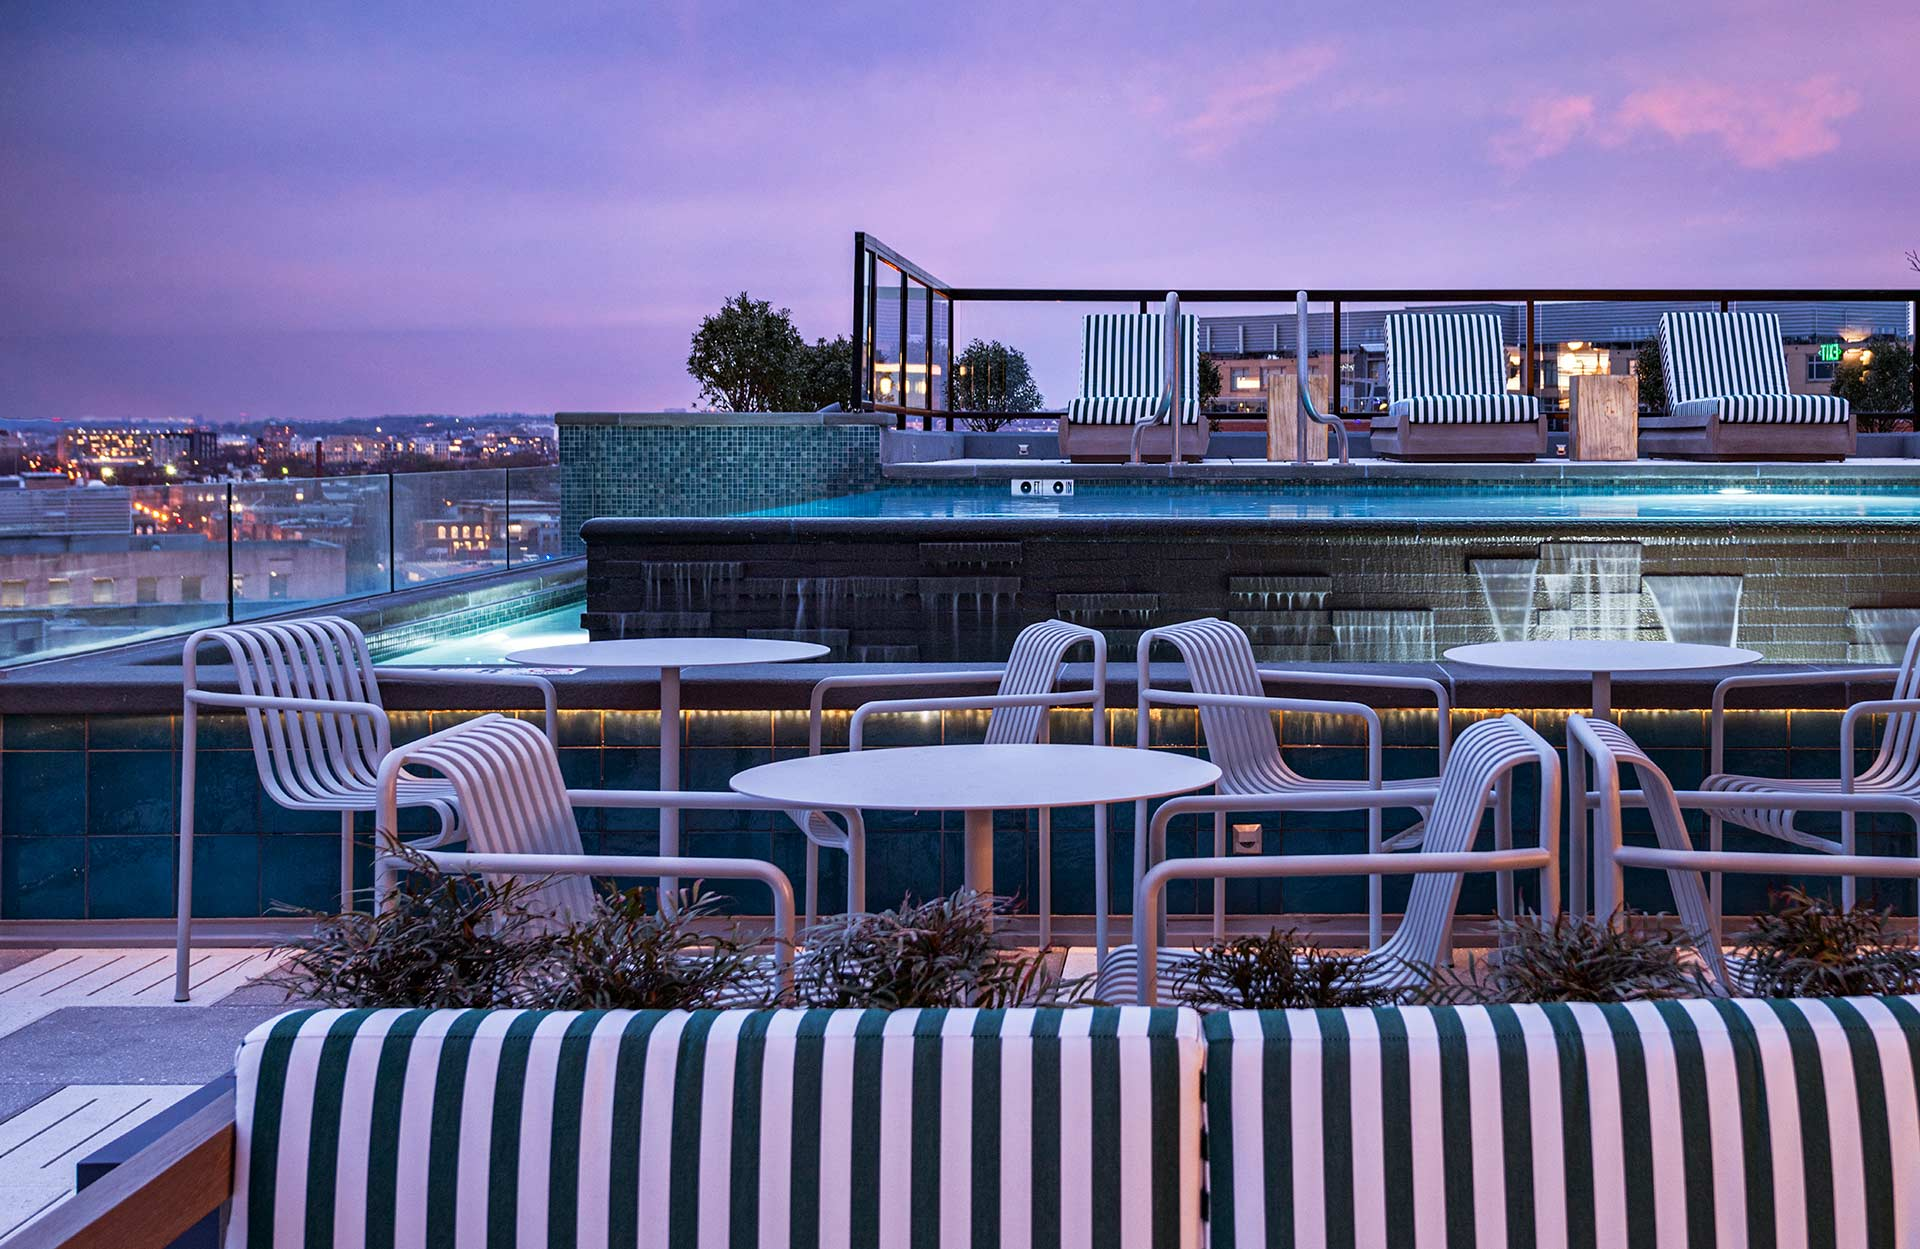 outdoor rooftop seating in front of infinity pool at dusk